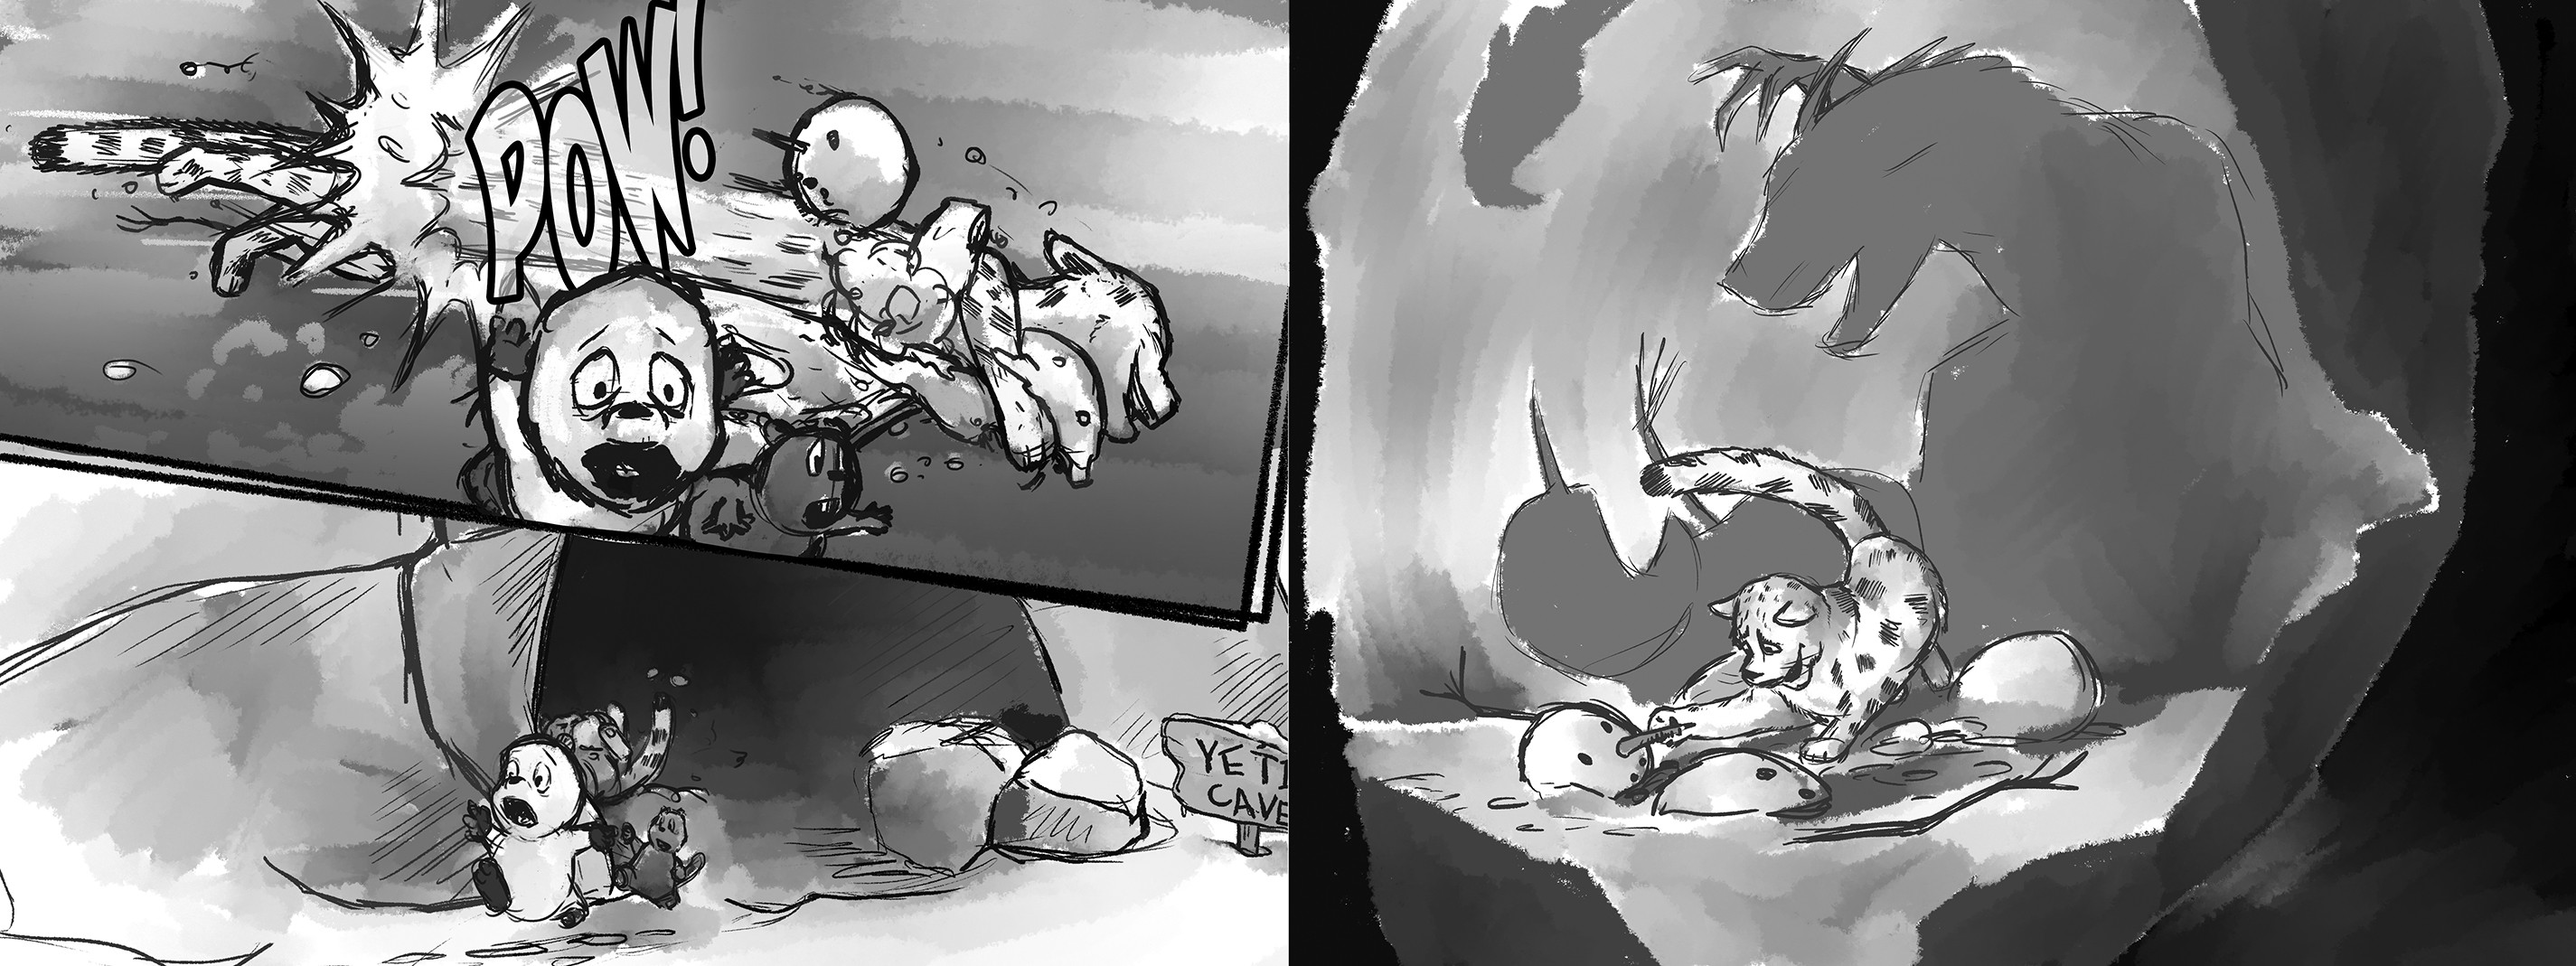 Dummy sketch for pages 19 & 20